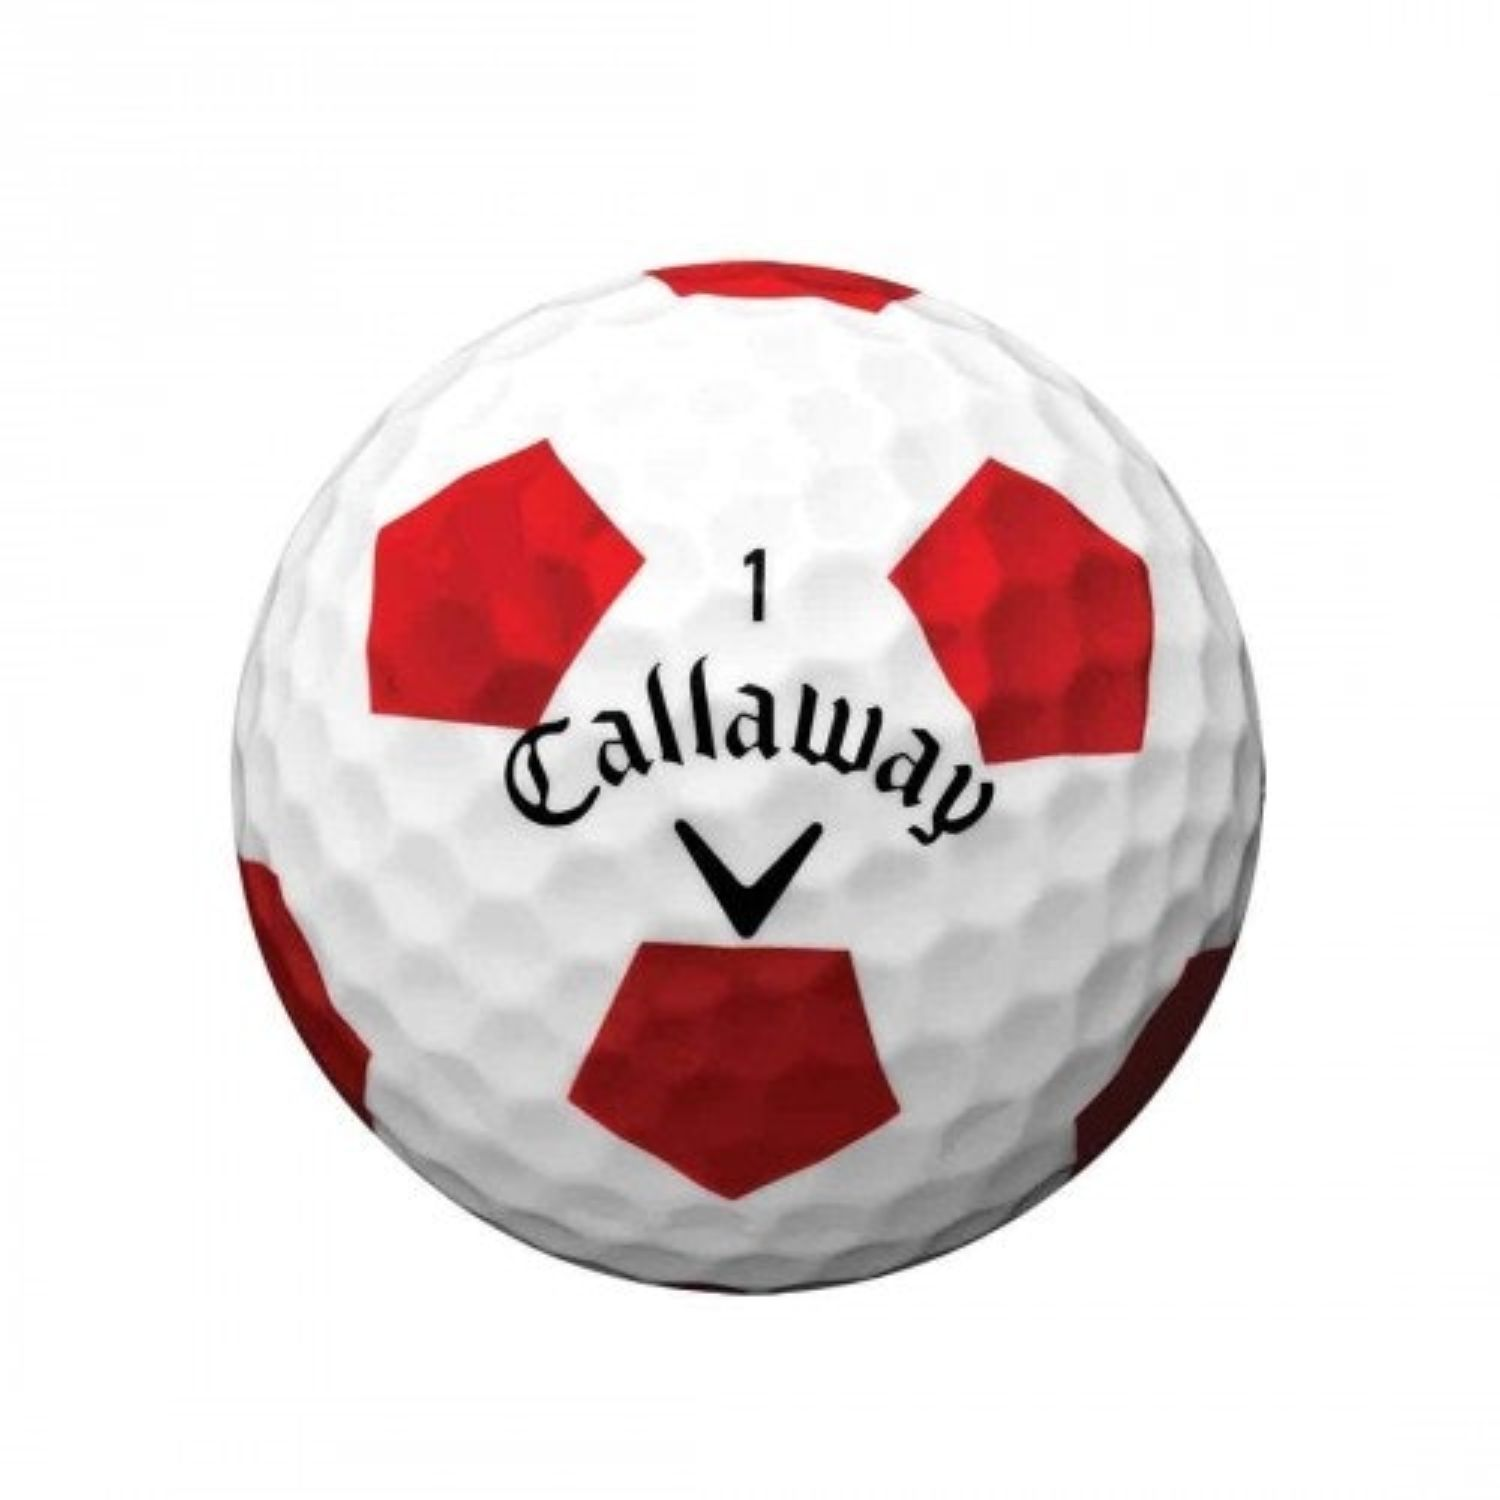 Callaway Chrome Soft 2020 Golf Balls Truvis White-Red